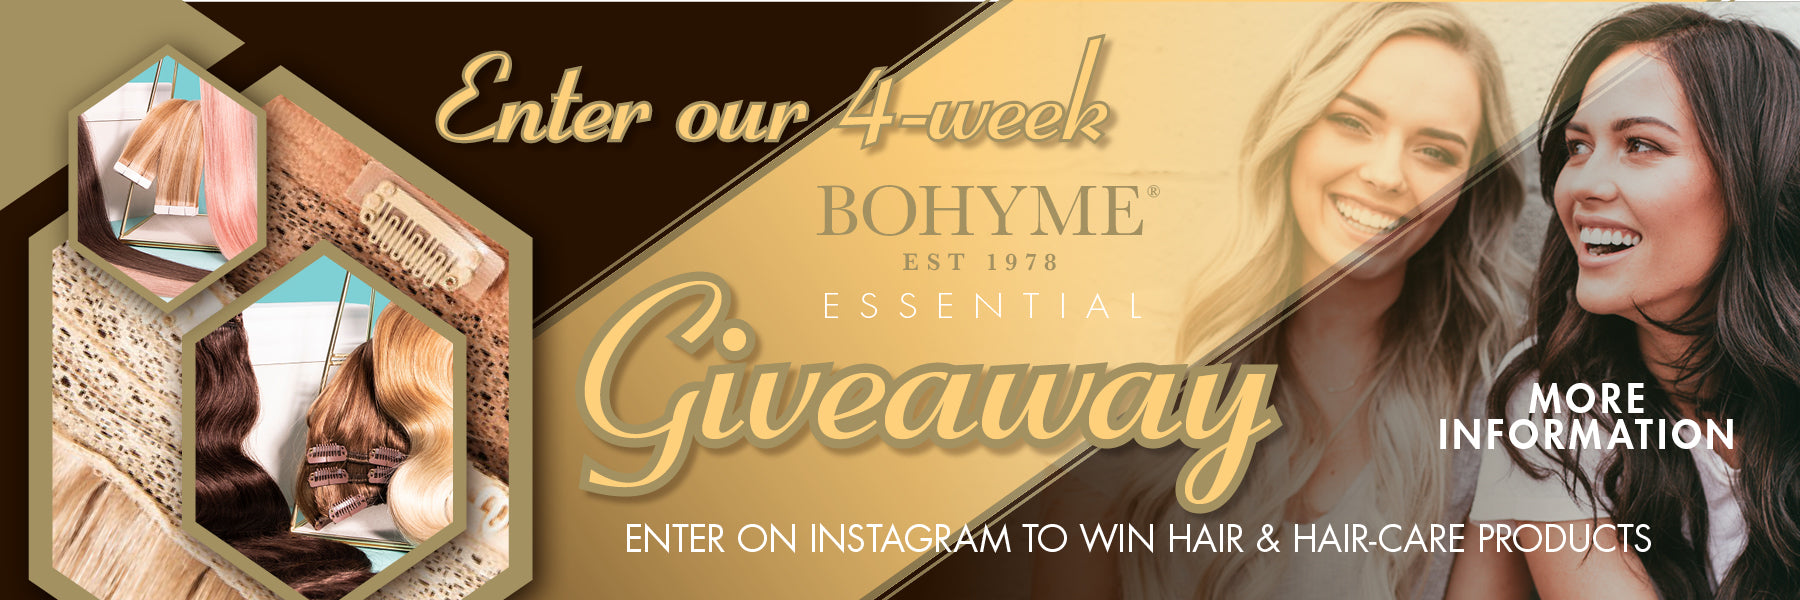 View more info on the Bohyme Essential Giveaway on Instagram